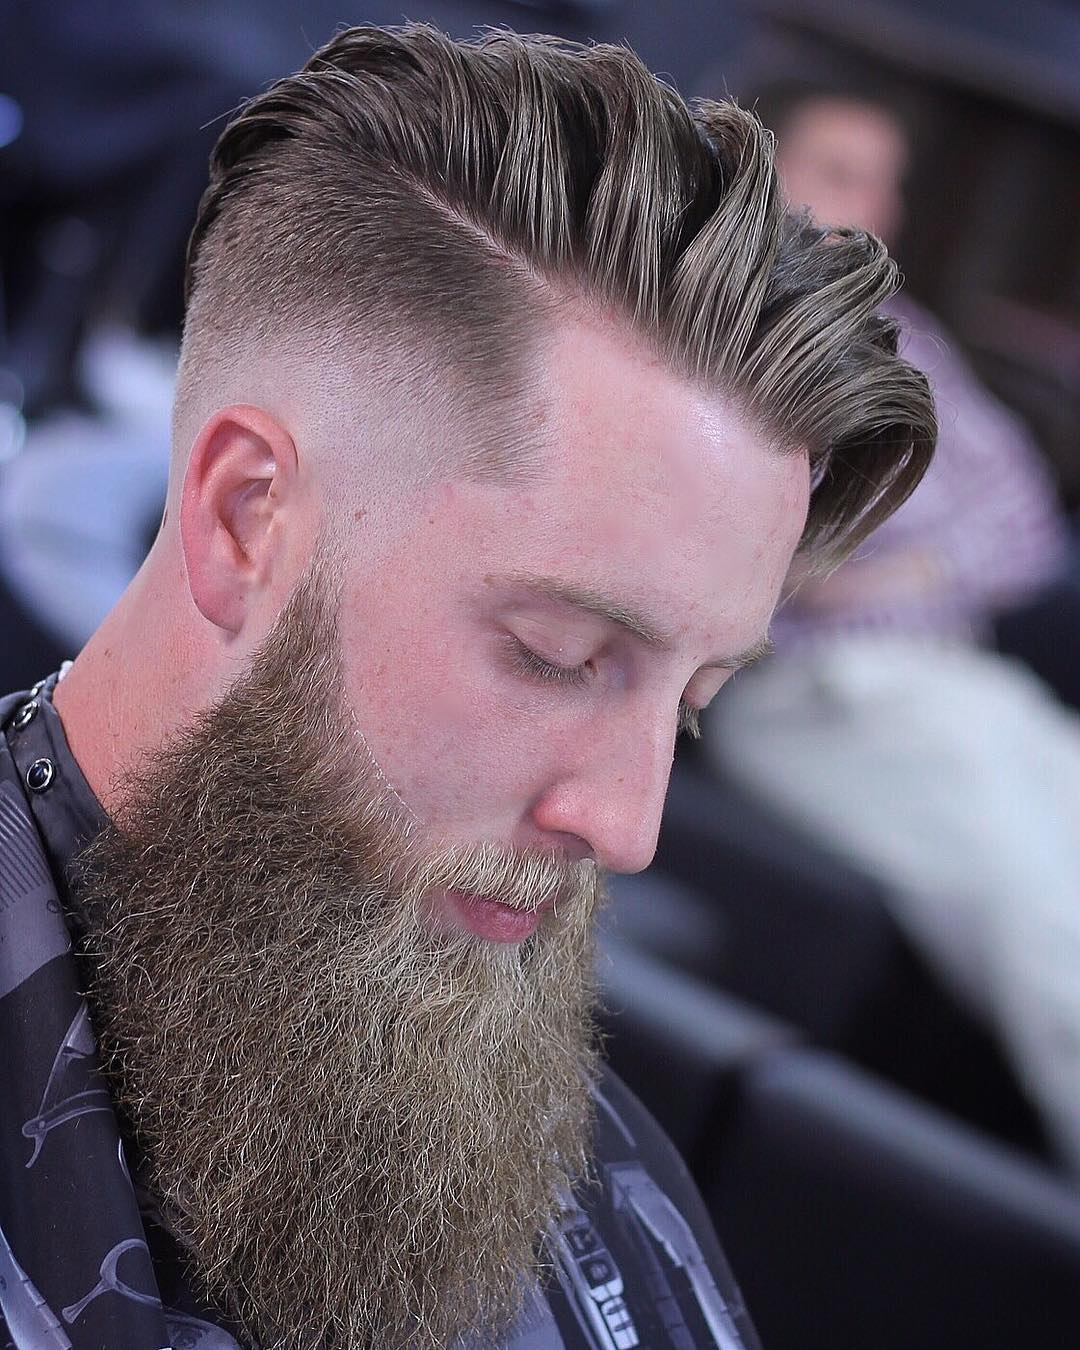 this undercut fade hairstyle is another very popular men's hipster haircut, it contrasts dramatically with shaved sides